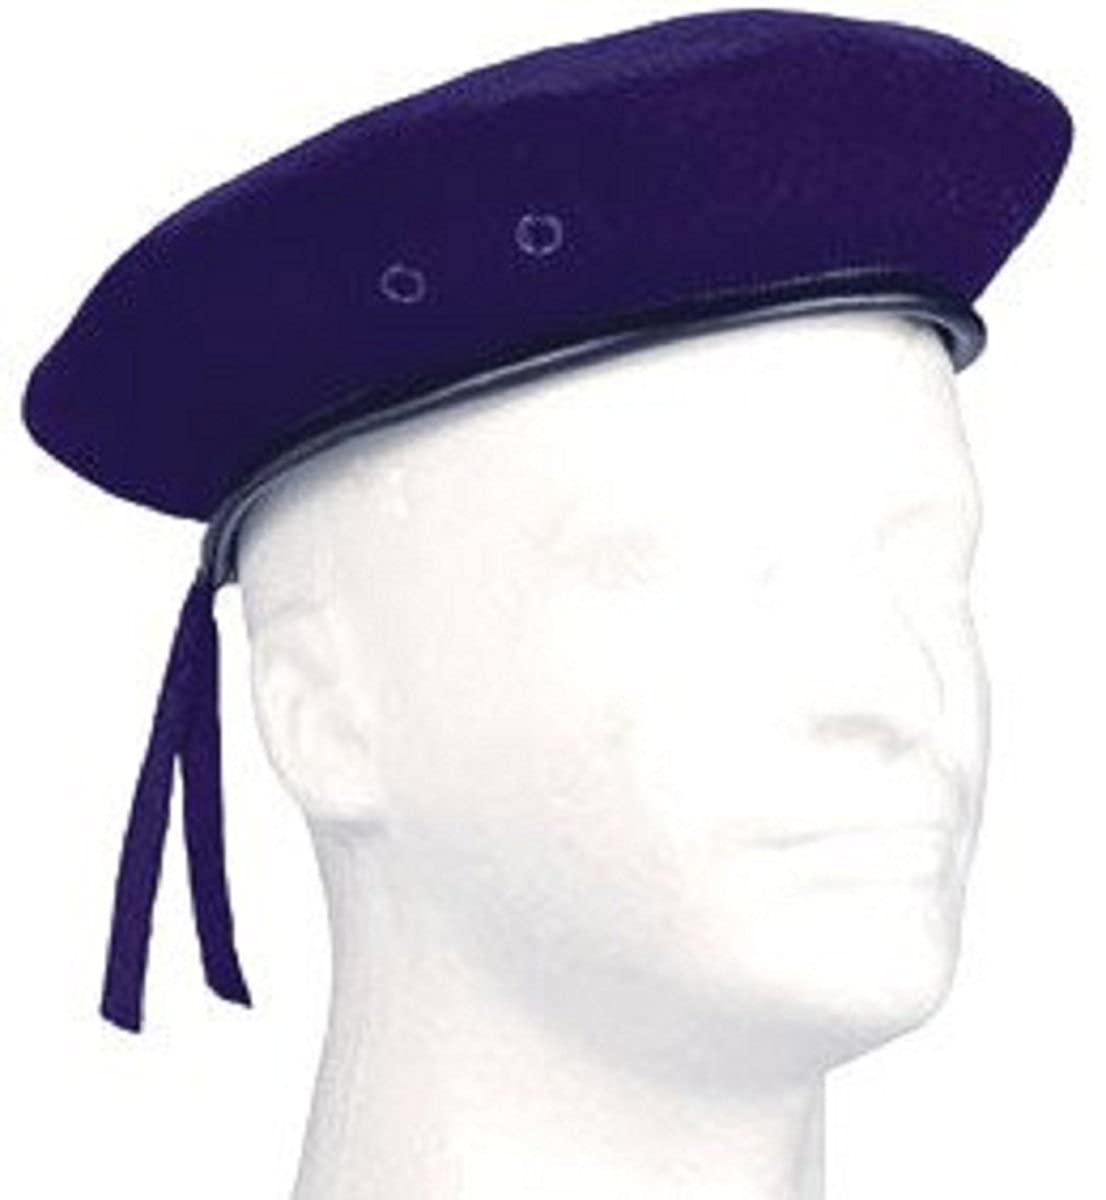 4916 Military Navy Blue Beret (Size 7.75)